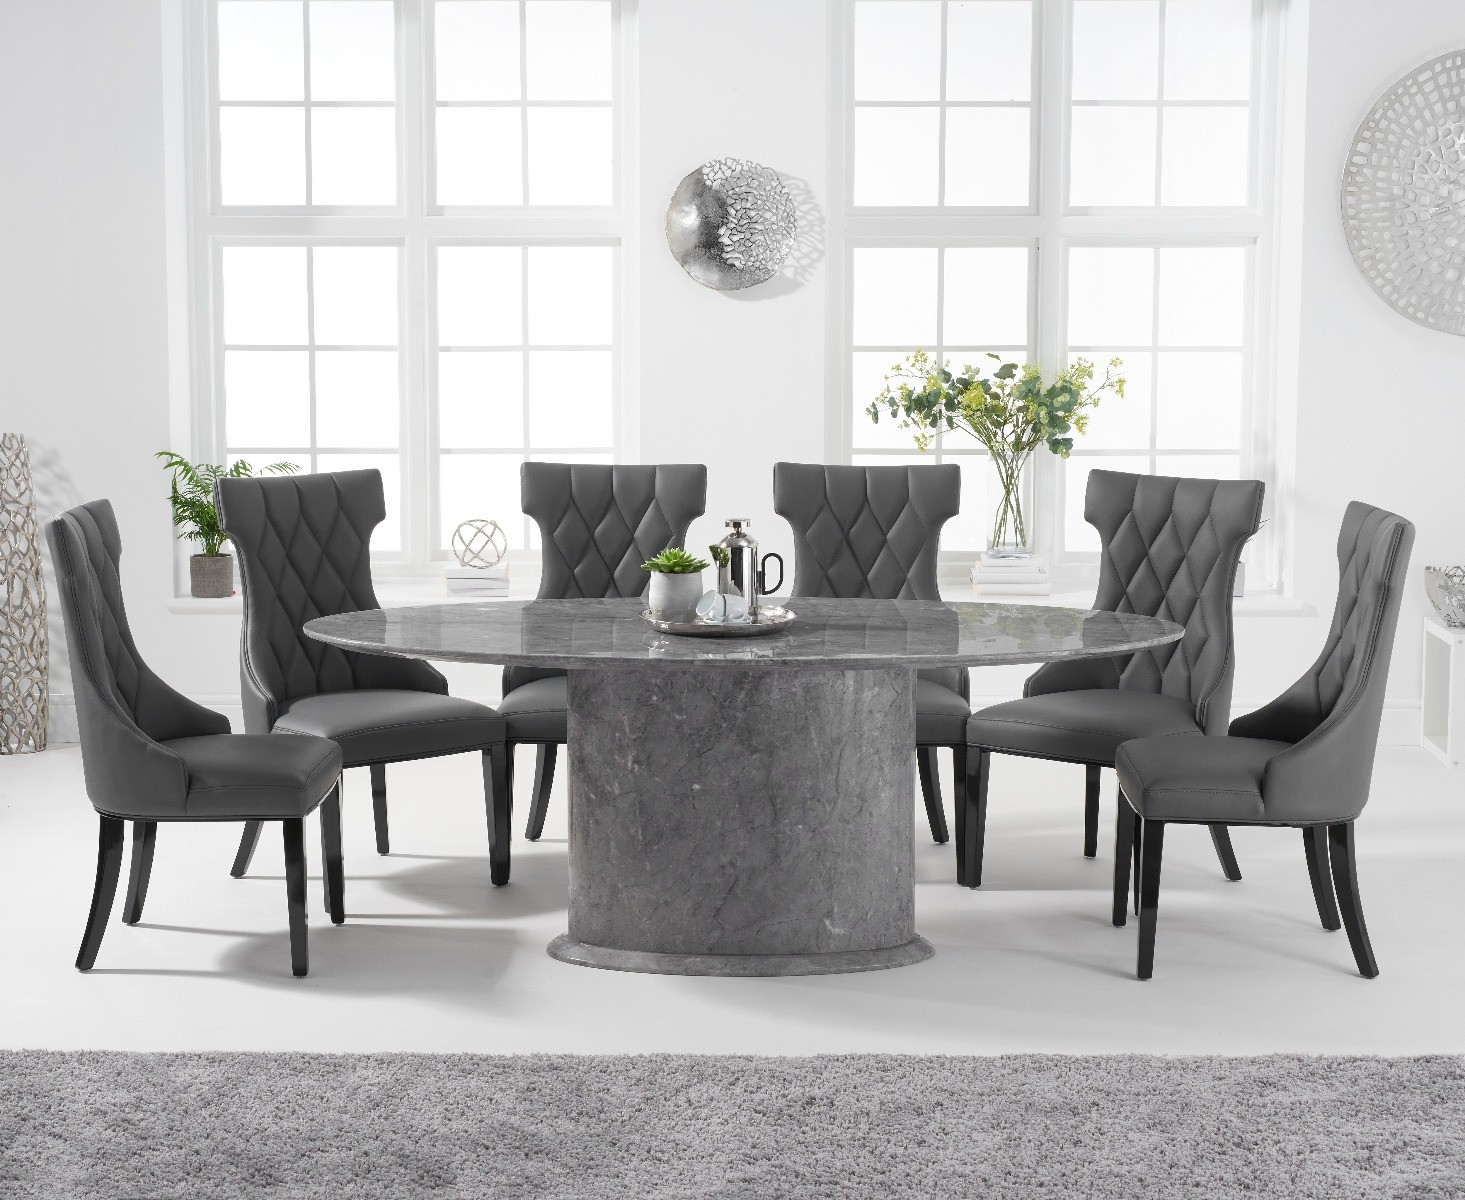 large oval dining table seats 10